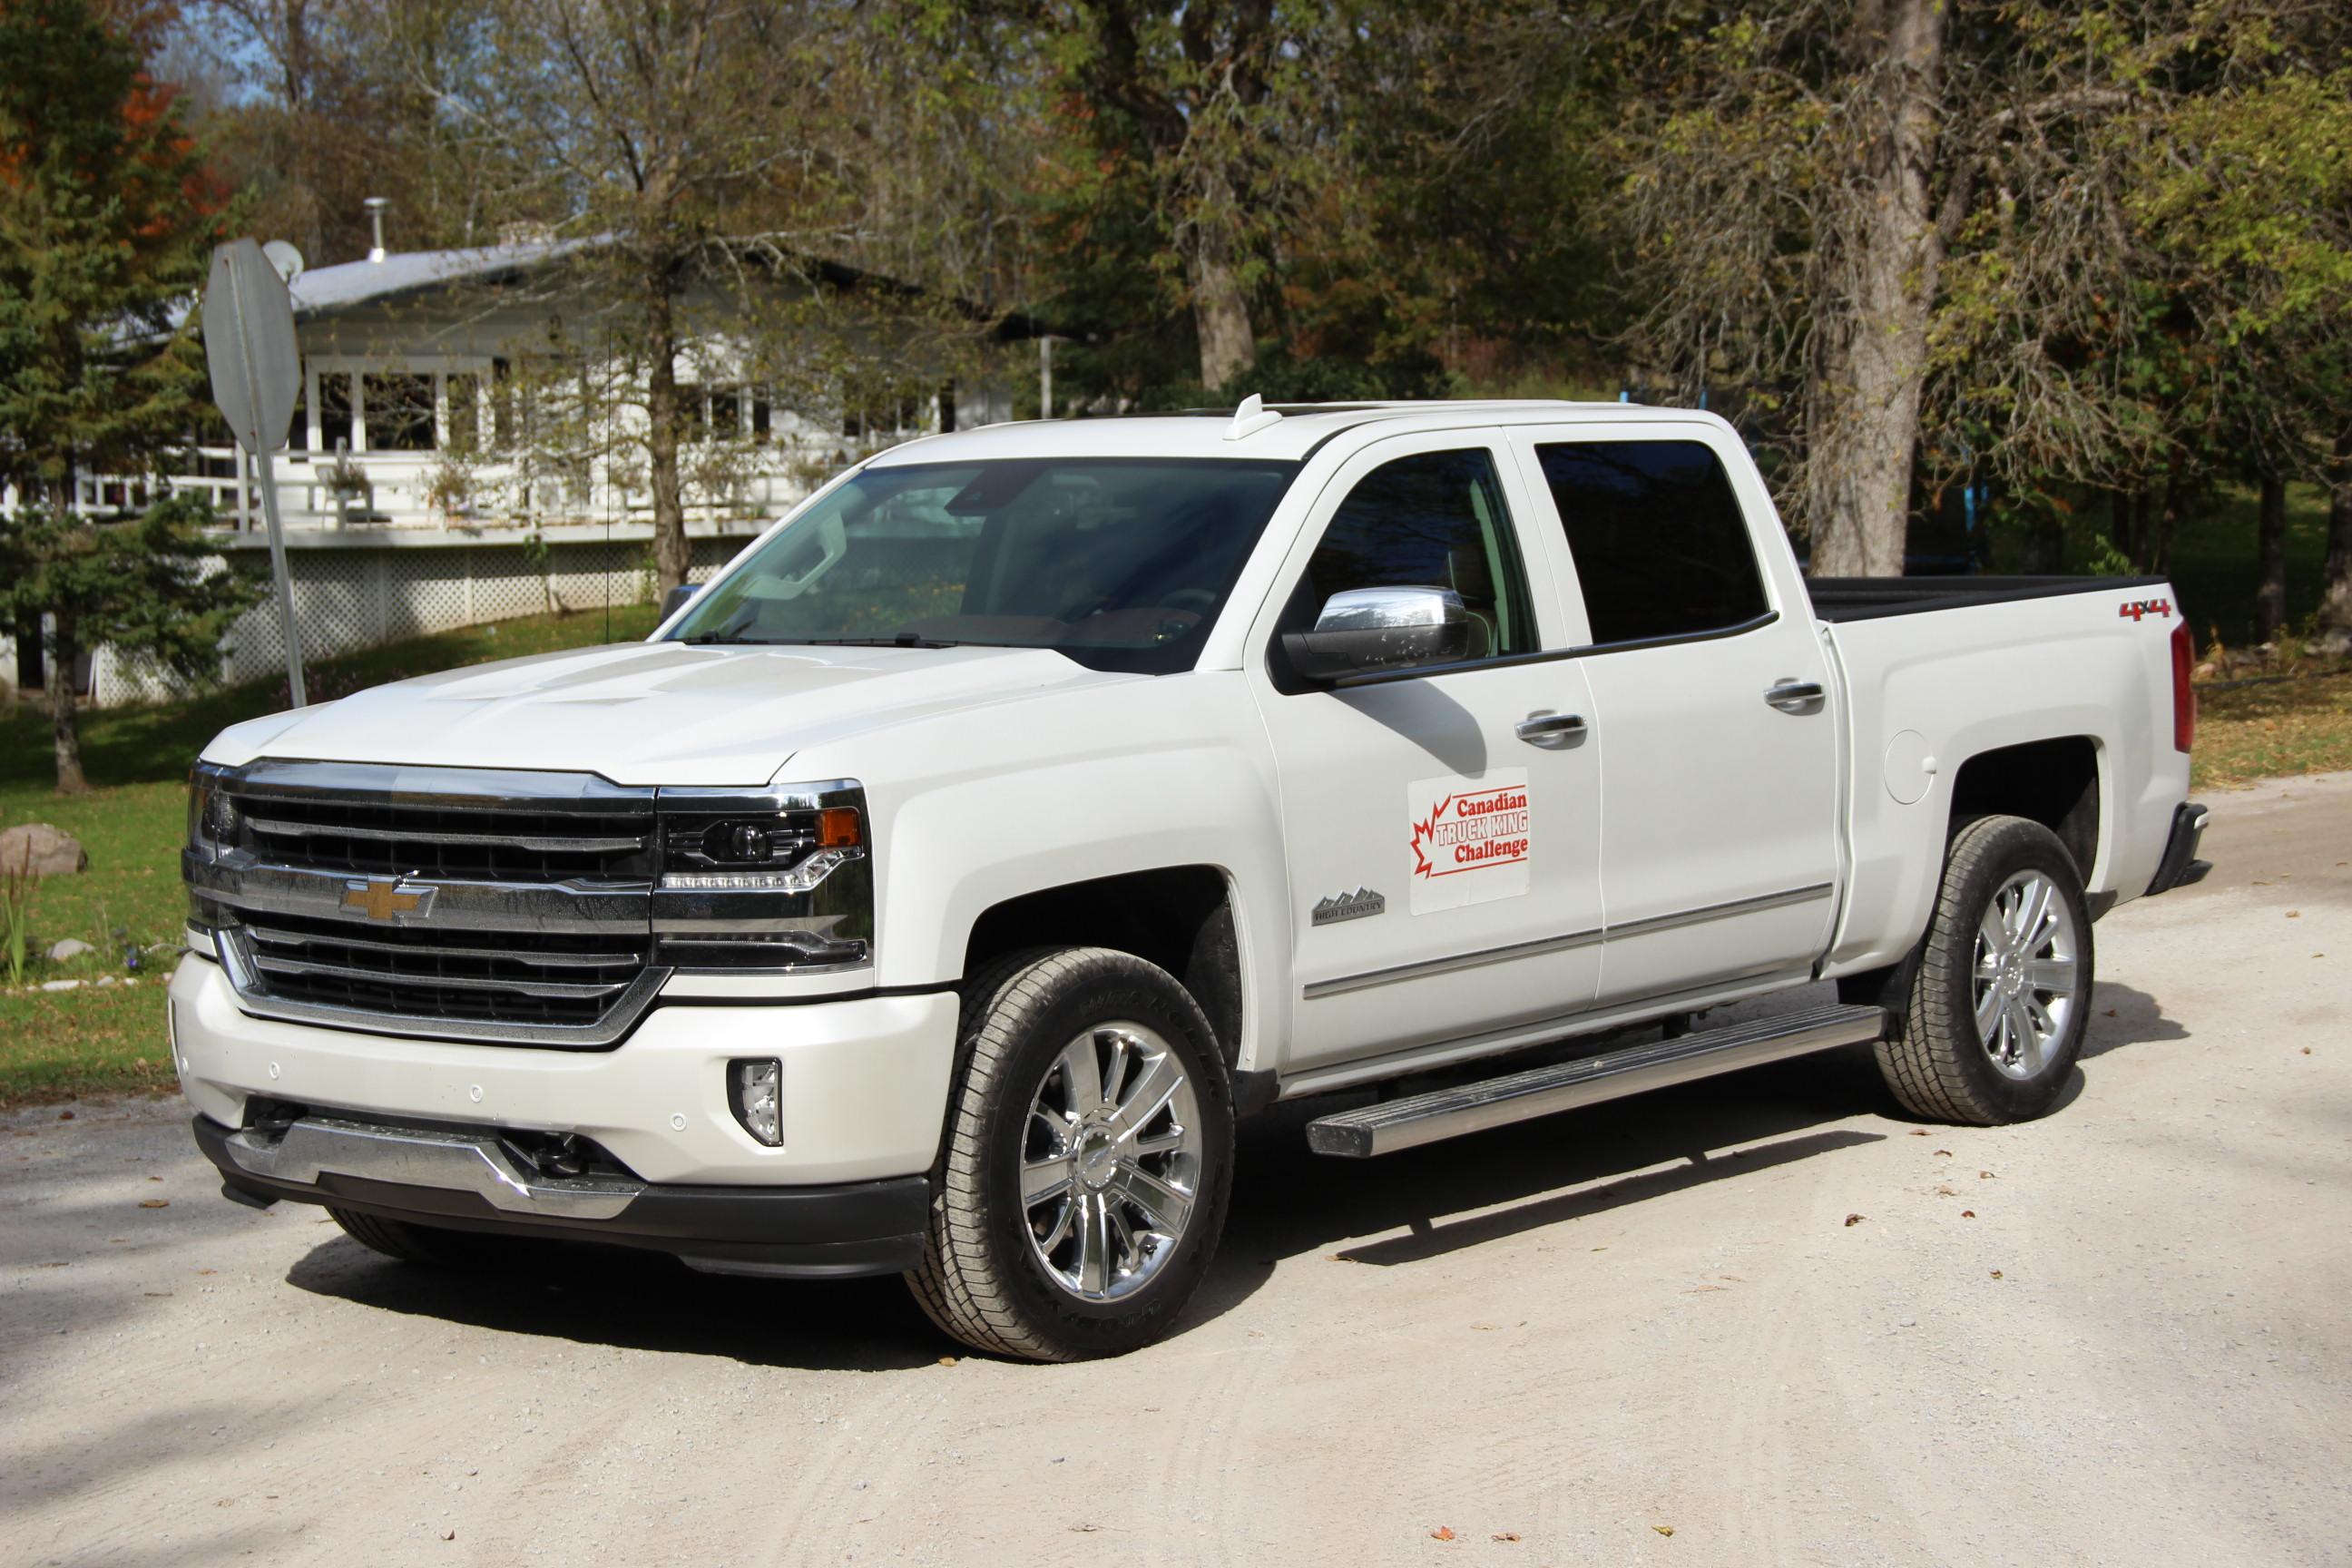 reaper silverado for cars sale com img auto chevrolet in houston used tx